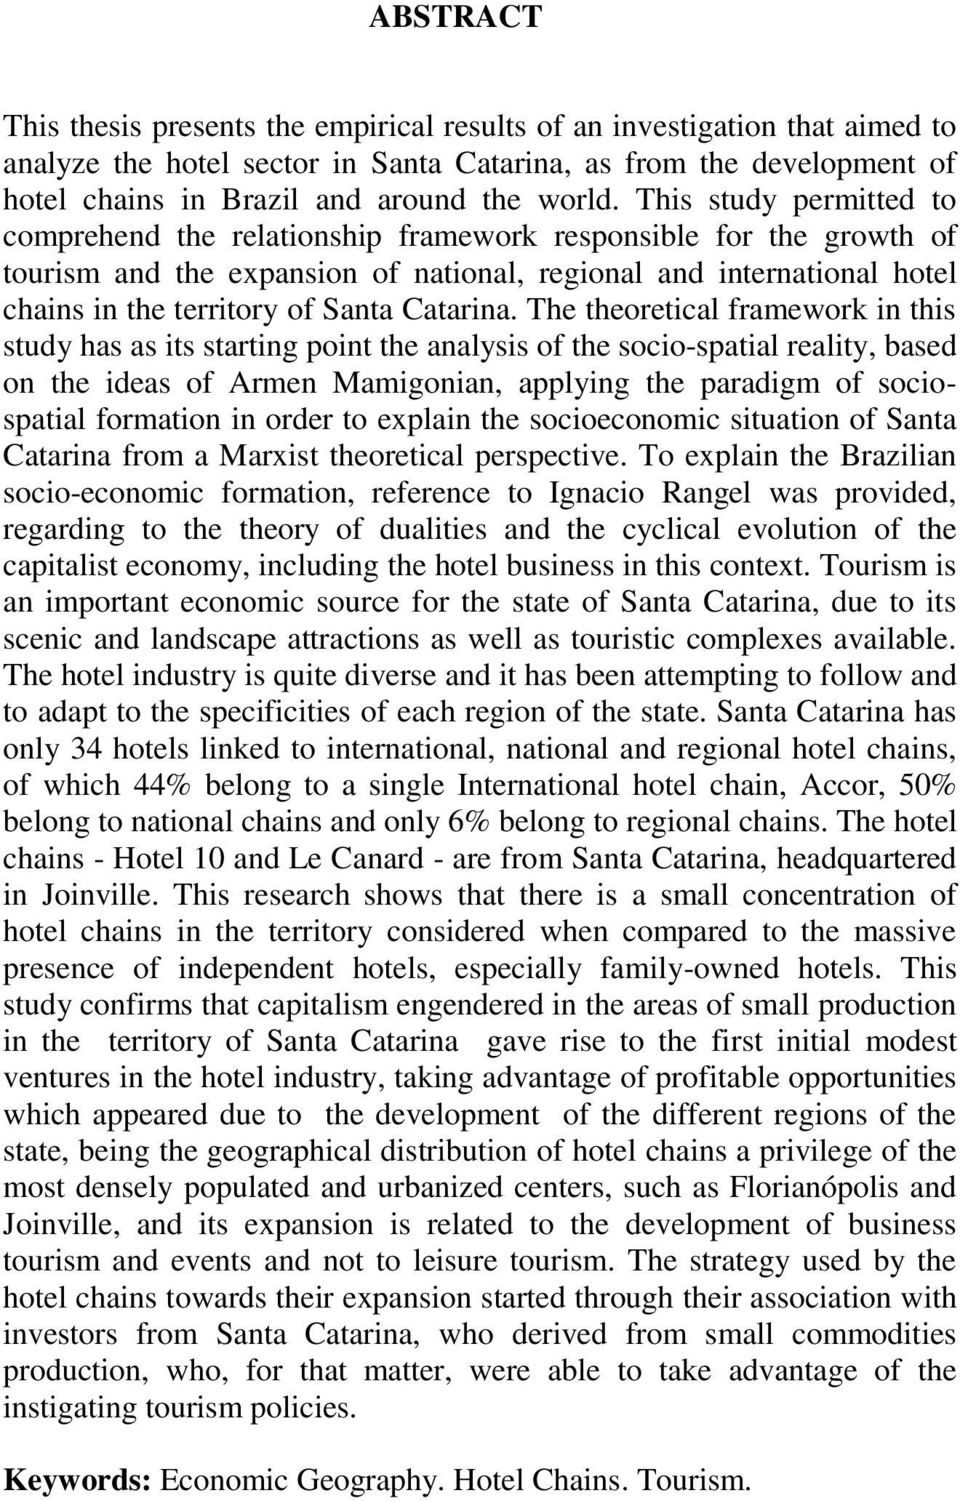 This study permitted to comprehend the relationship framework responsible for the growth of tourism and the expansion of national, regional and international hotel chains in the territory of Santa